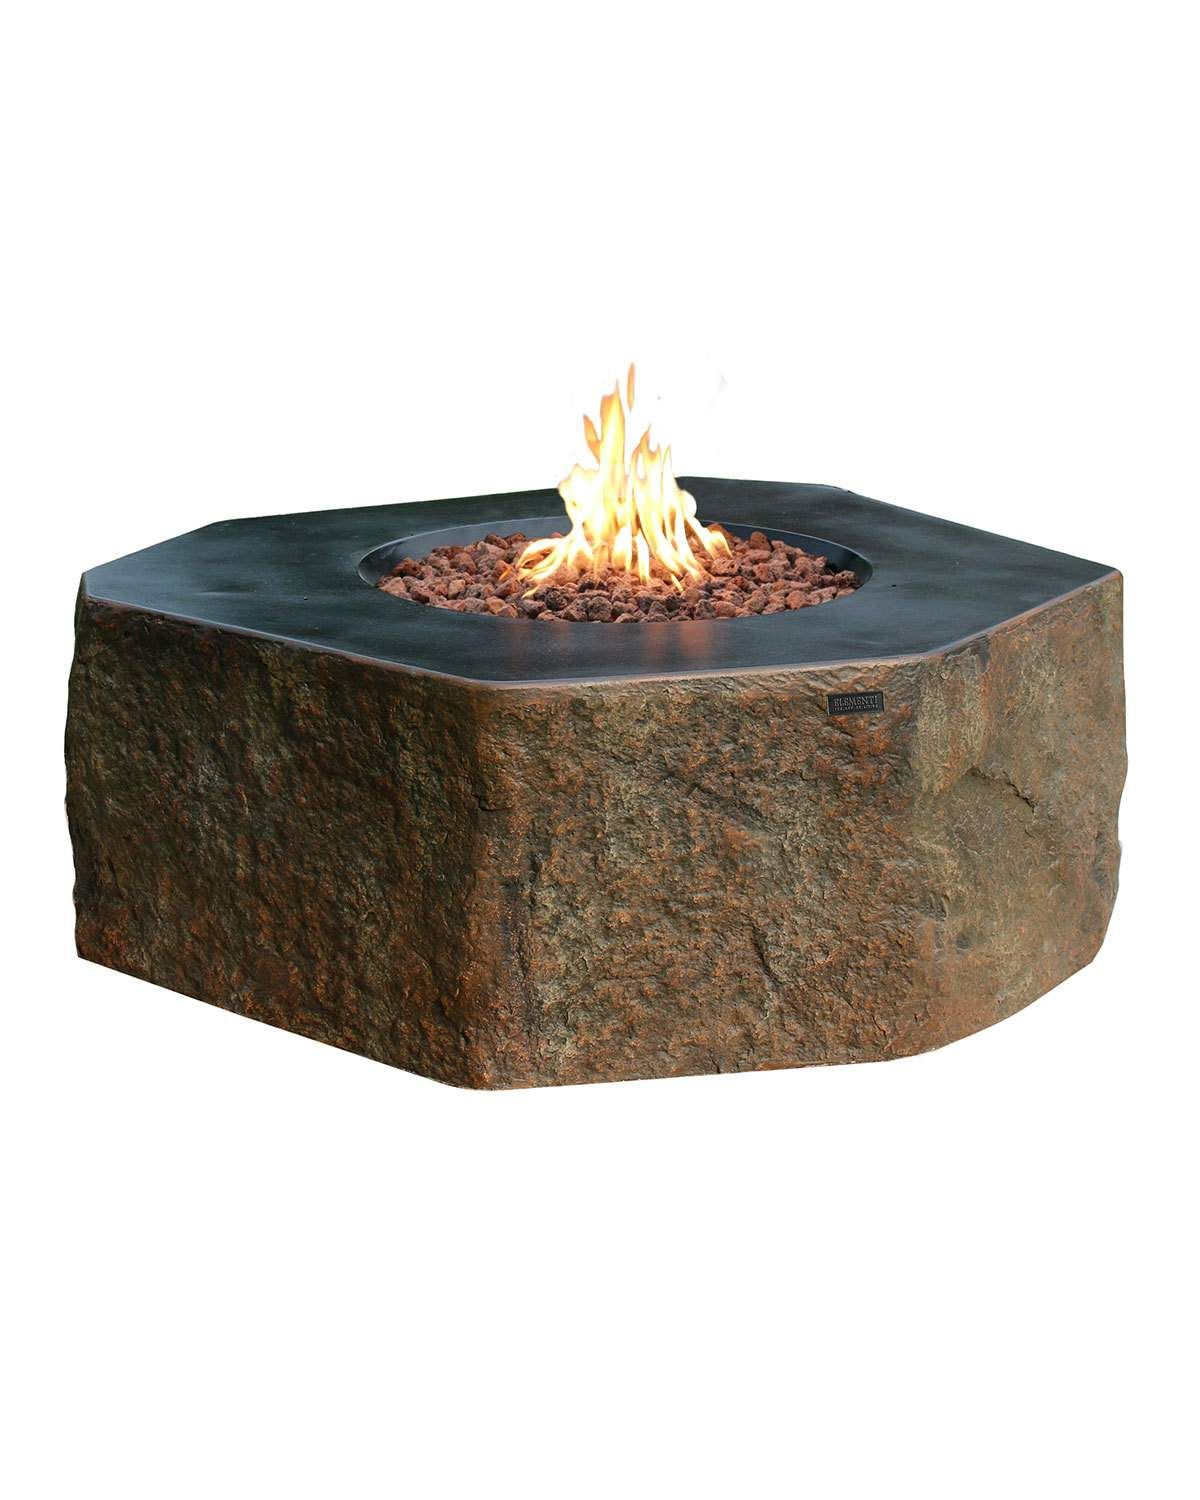 Ocean rock columbia outdoor fire table with natural gas assembly